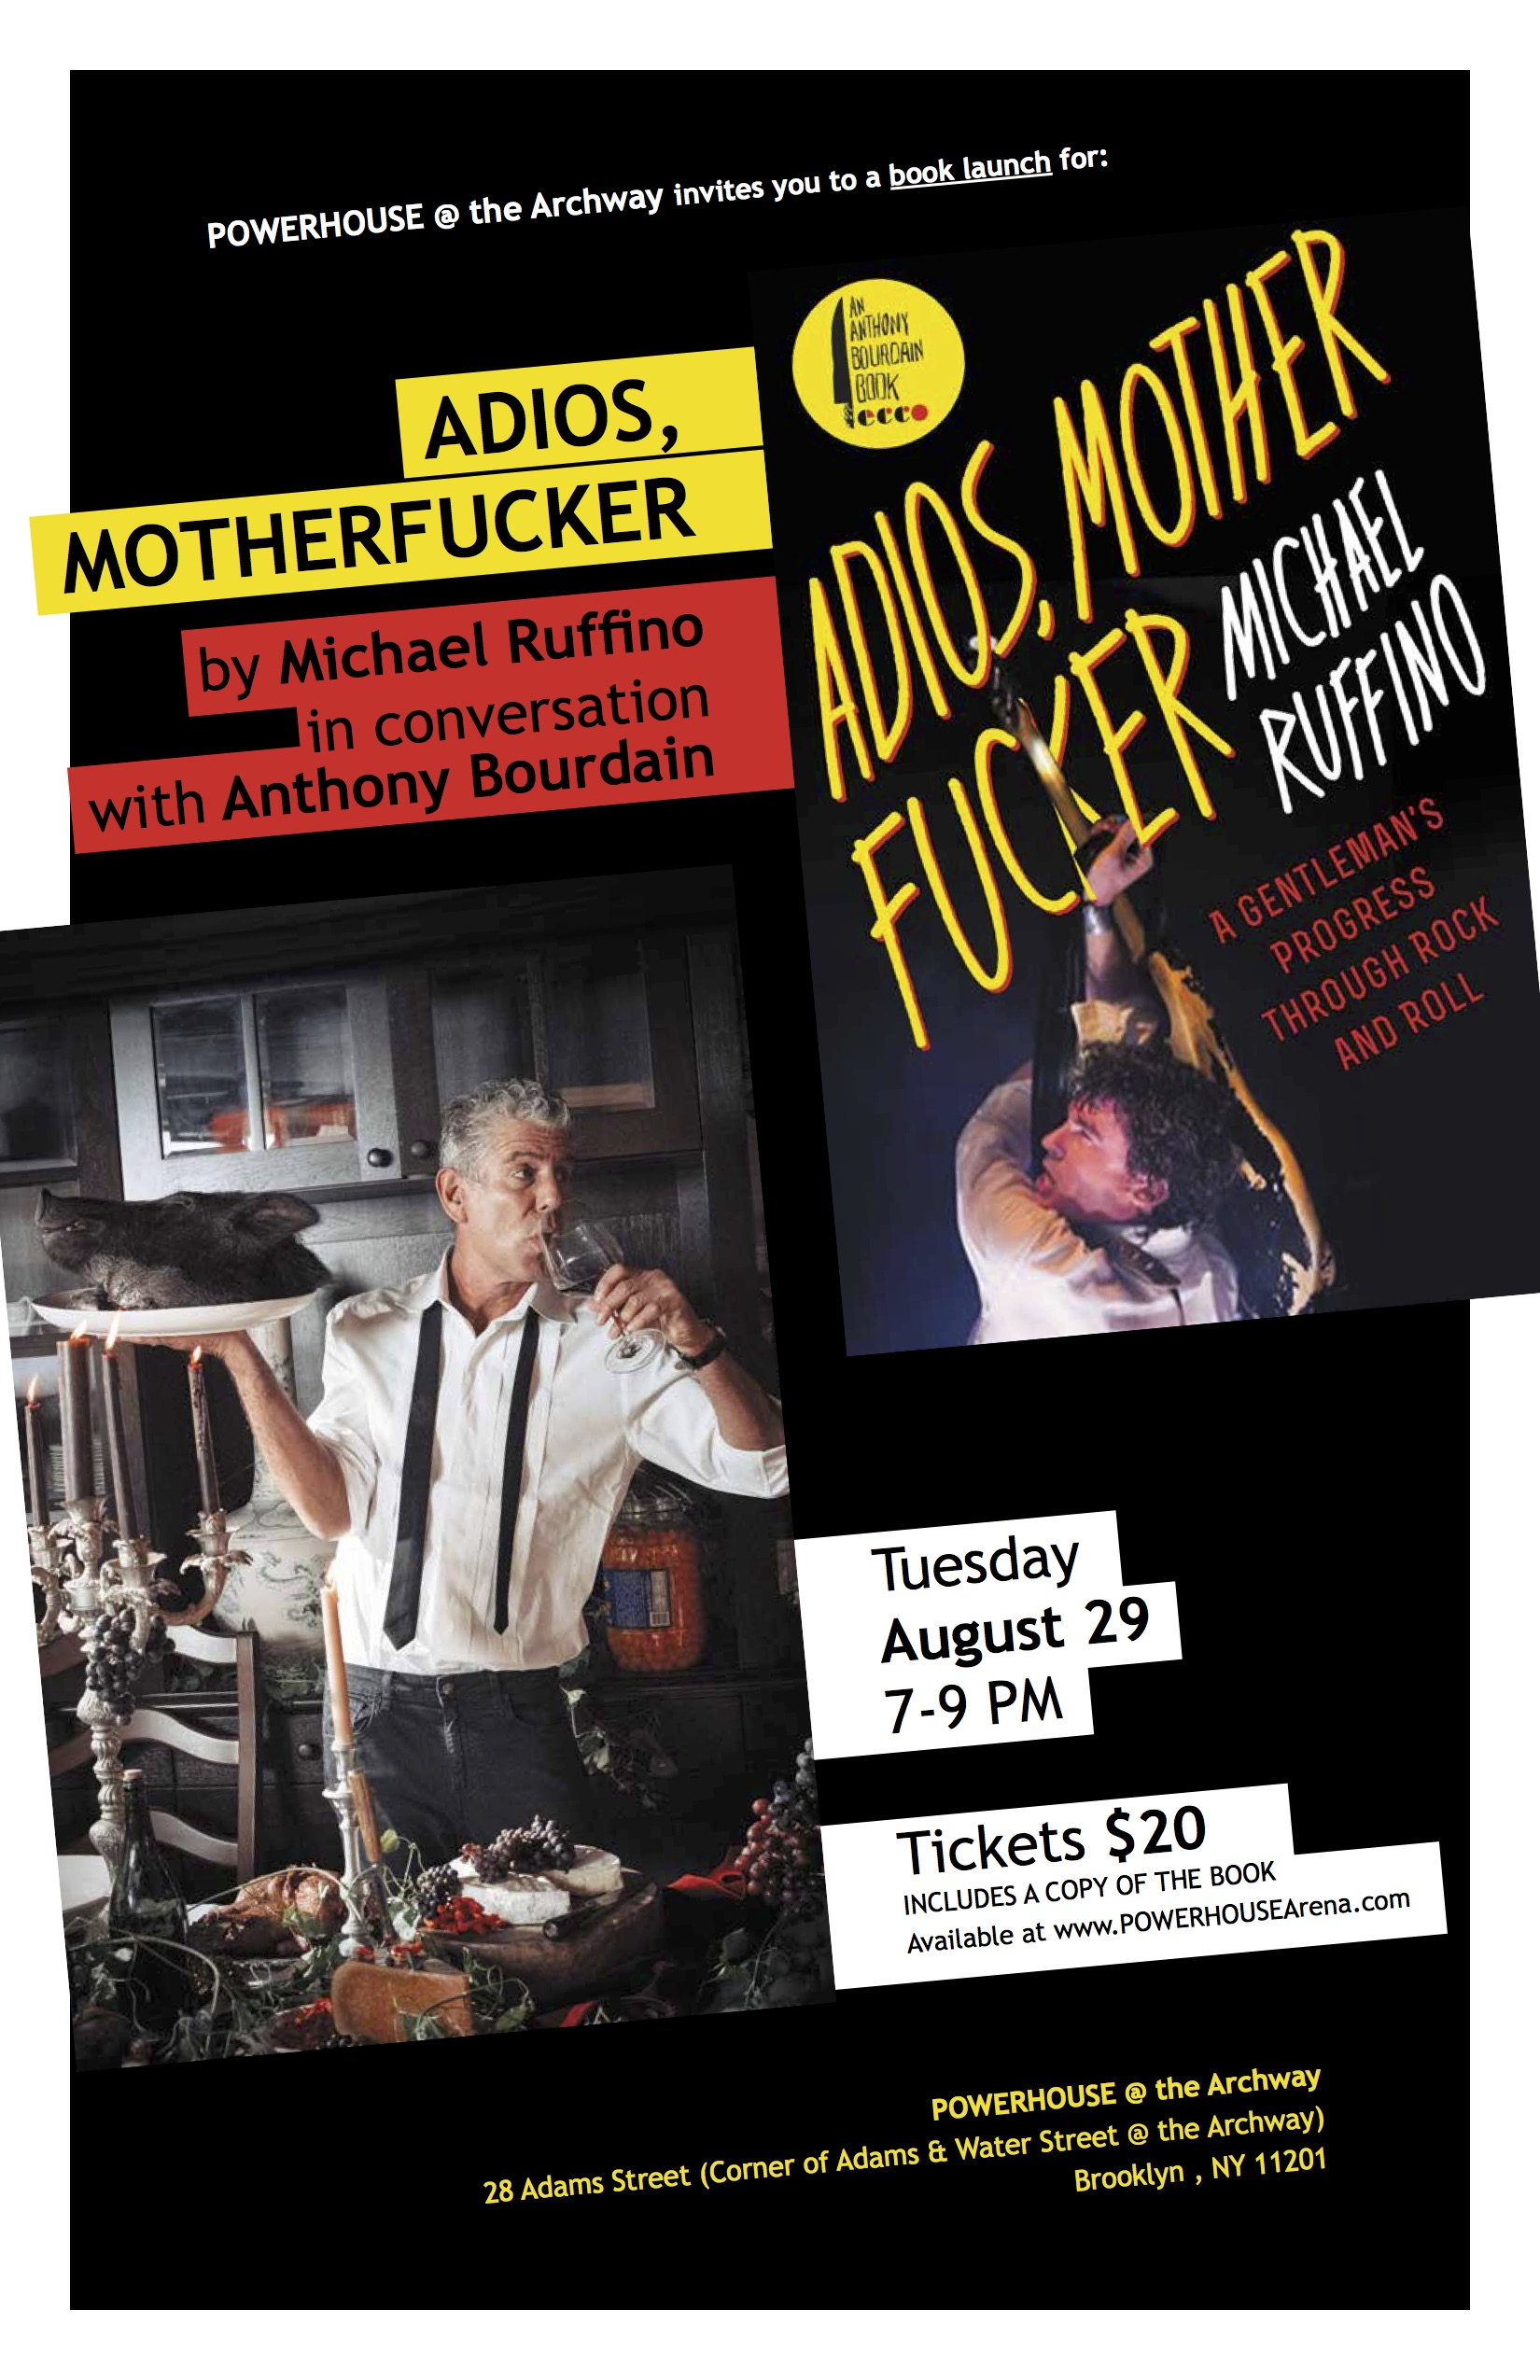 Book Launch: Adios, Motherfucker by Michael Ruffino — in conversation w/ Anthony Bourdain